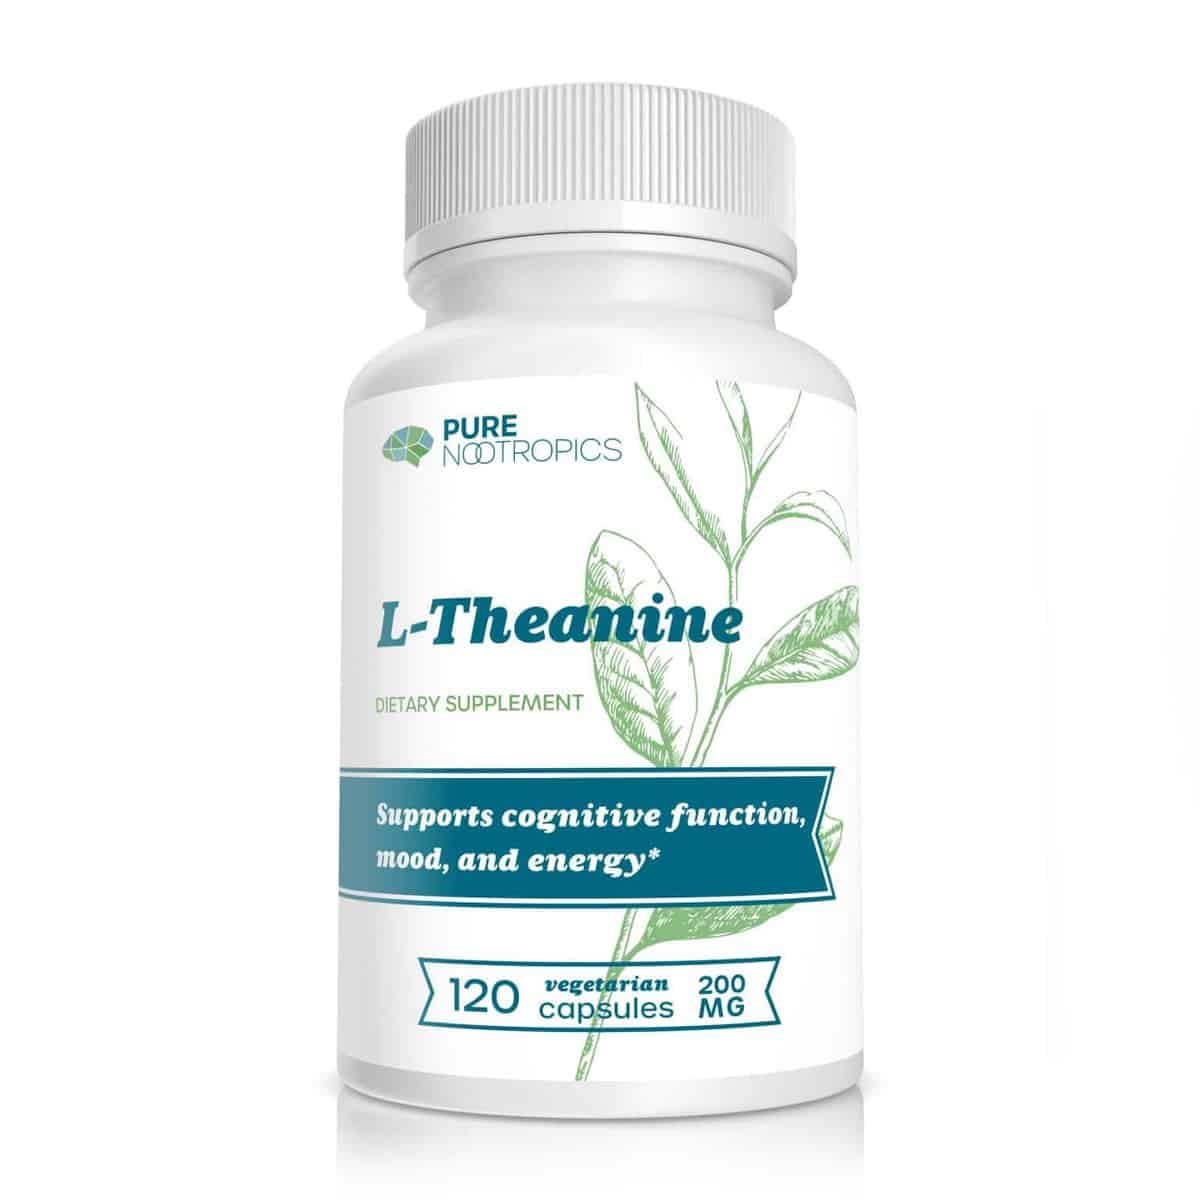 where to buy L-theanine, buy L-theanine from pure nootropics